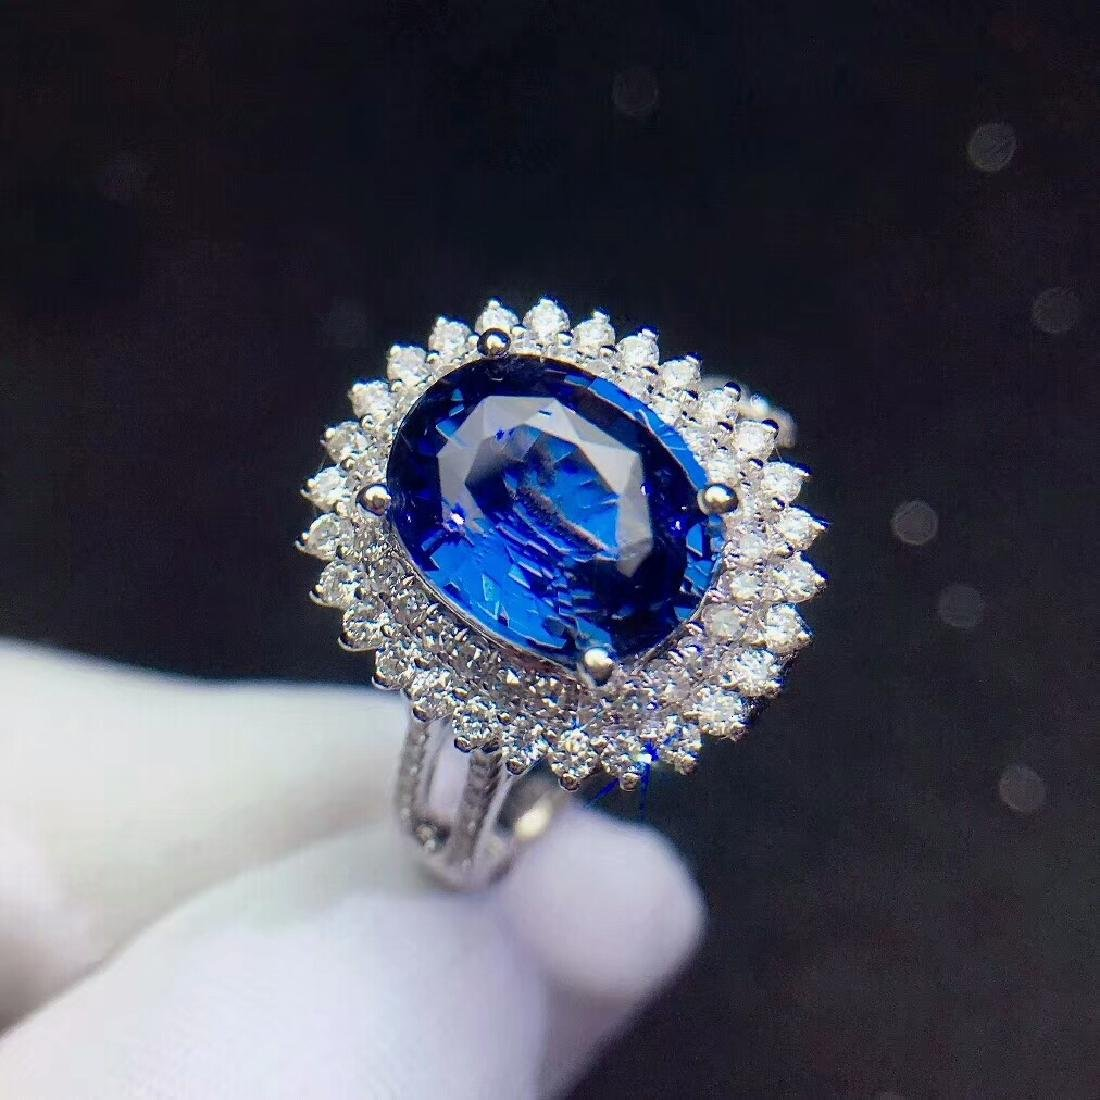 3.04ct Sapphire Ring in 18kt white Gold - 2